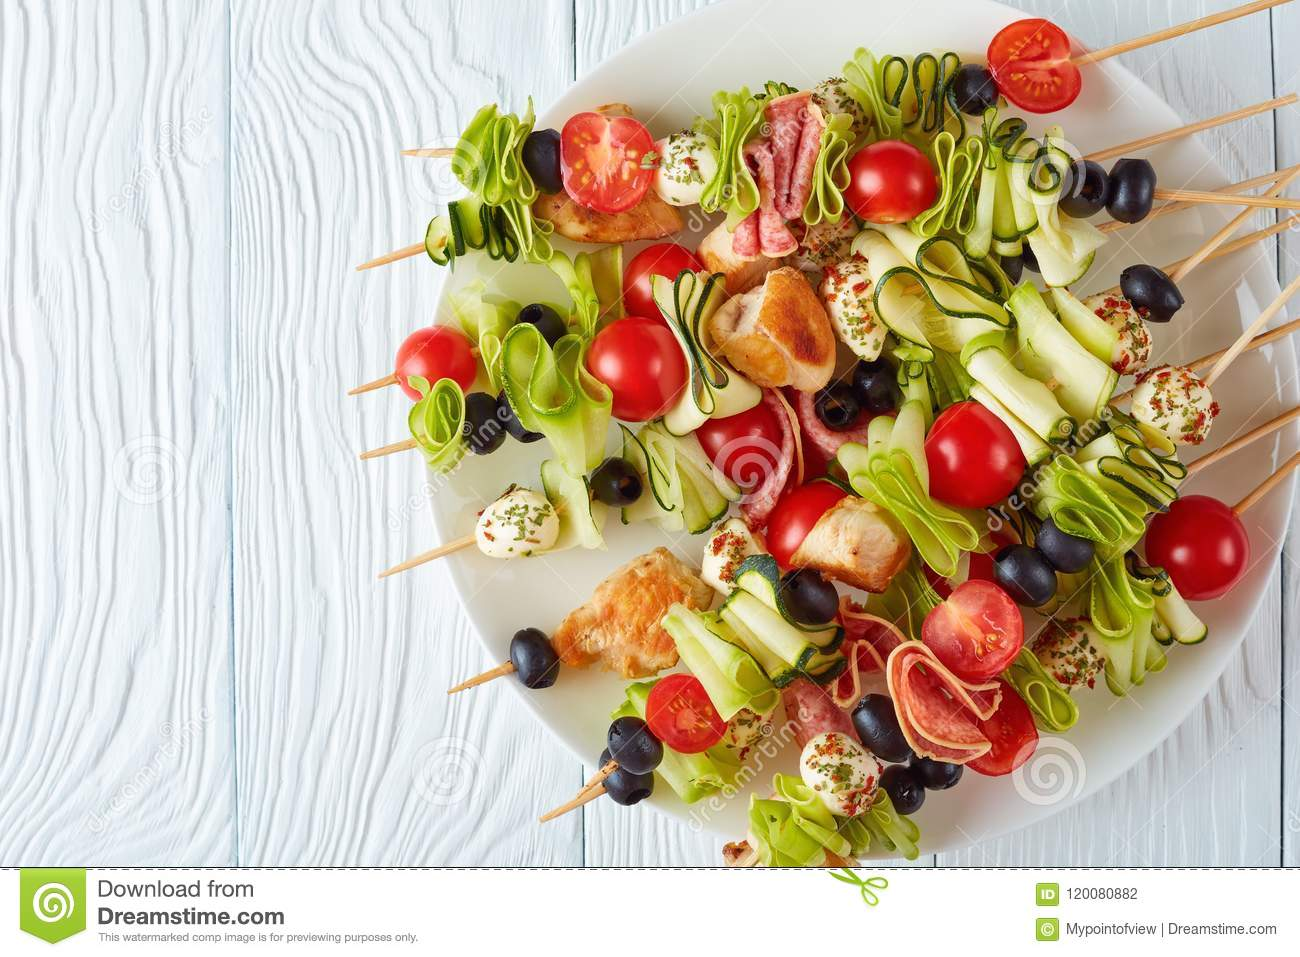 Antipasto skewers with meat and veggies